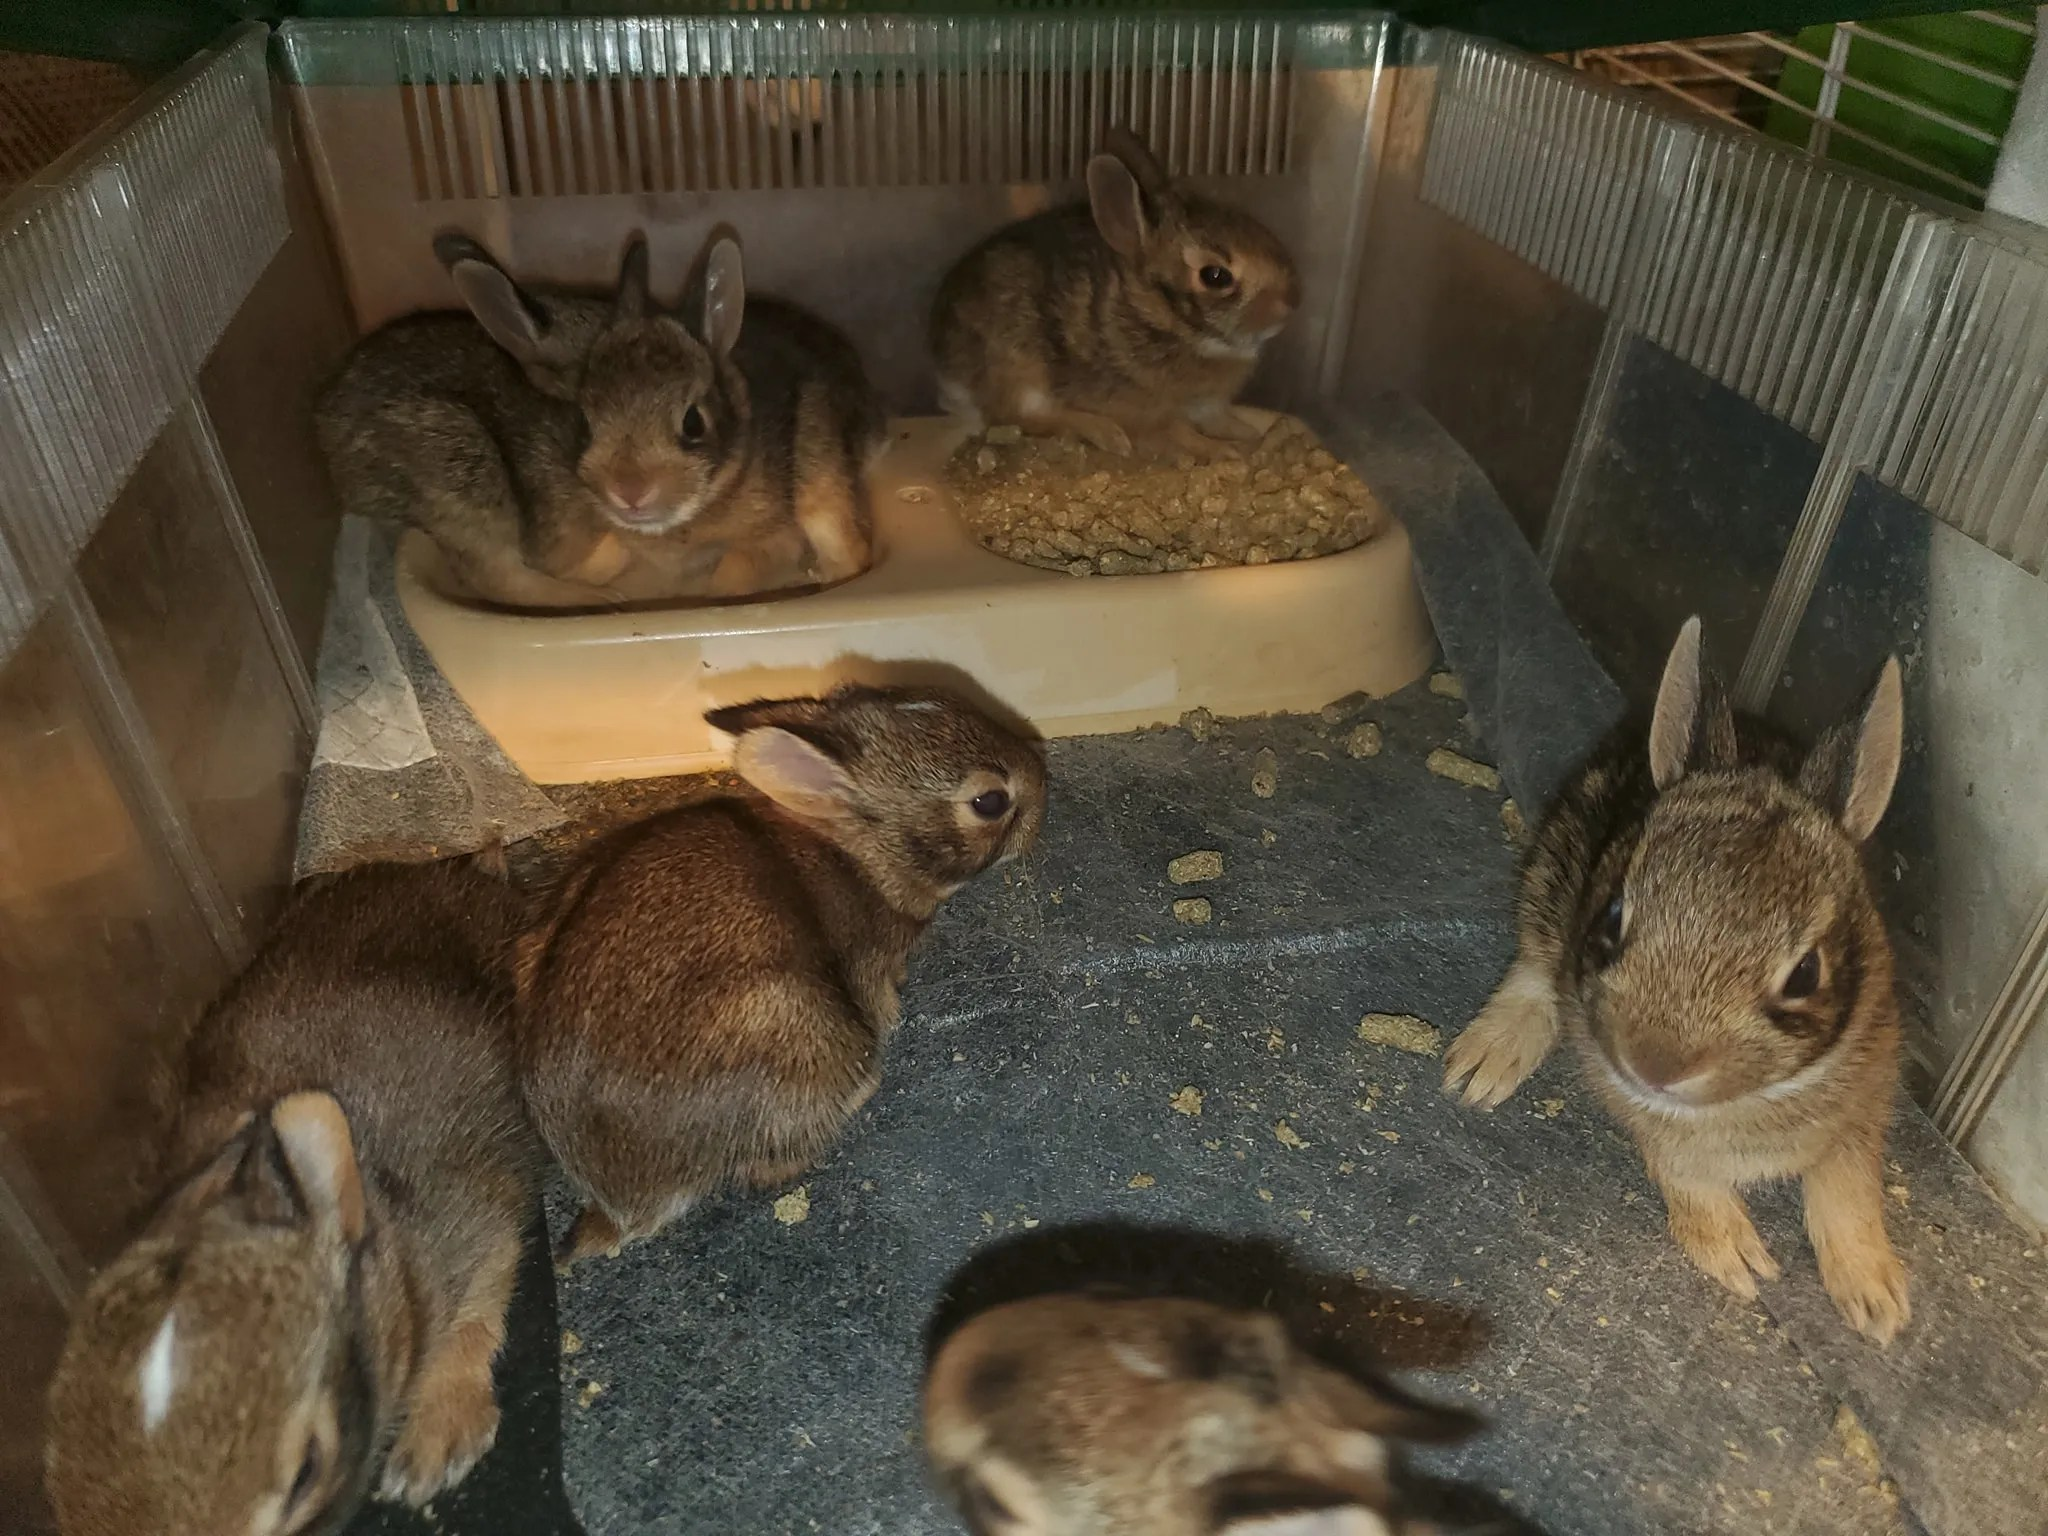 Rabbits relax at We Are Their Voice Wildlife Care and Rescue LLC. David and Cheryl Cox run the Maine-based rescue for small mammals.